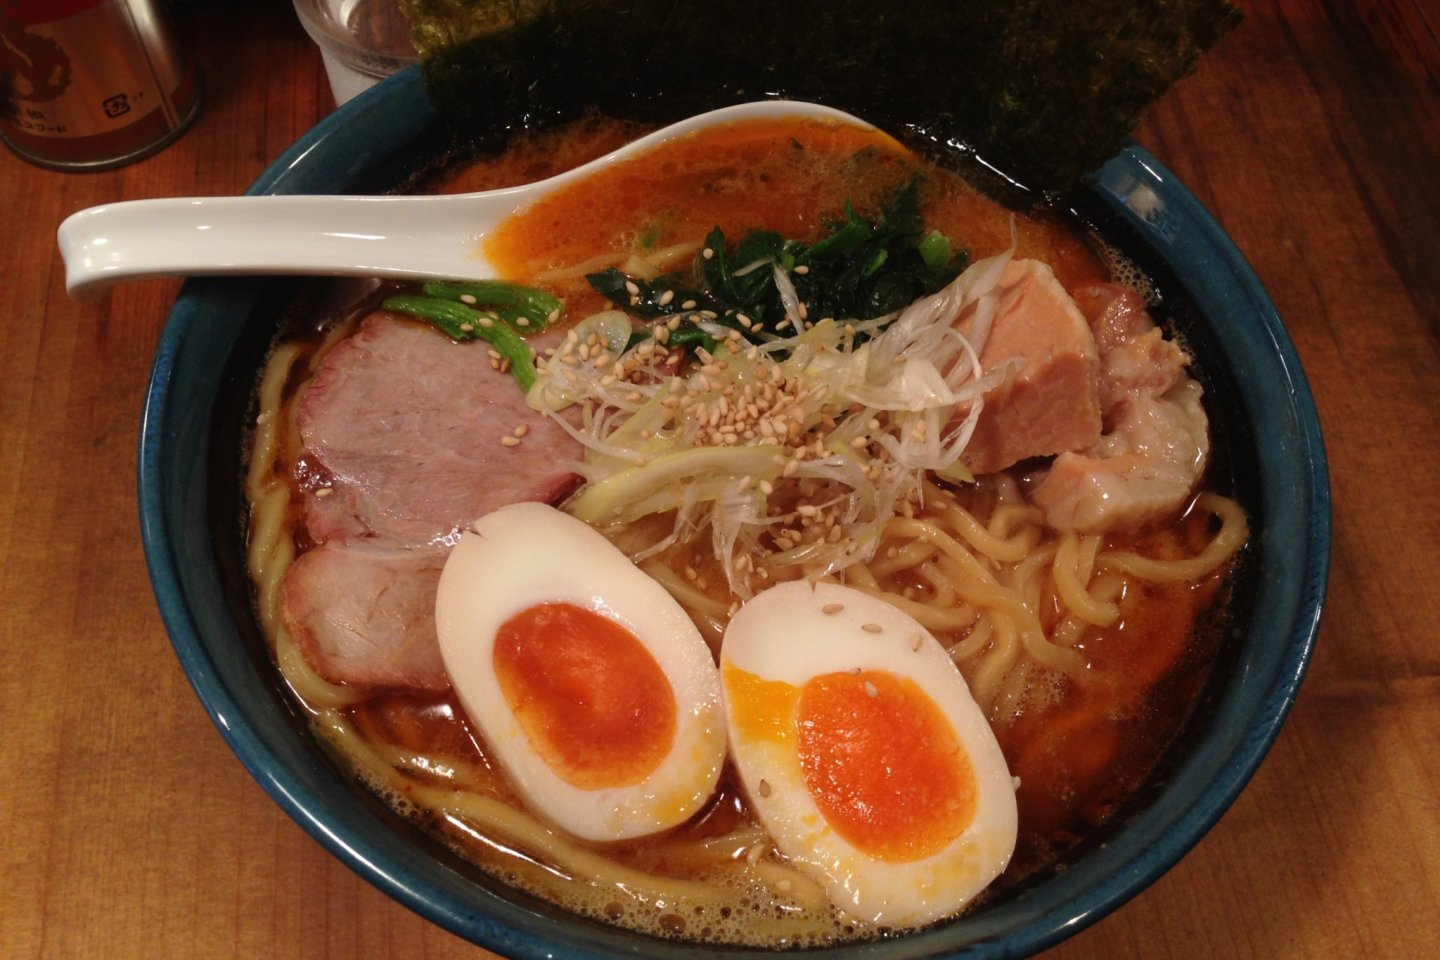 Or a really good spicy miso ramen at good prices.